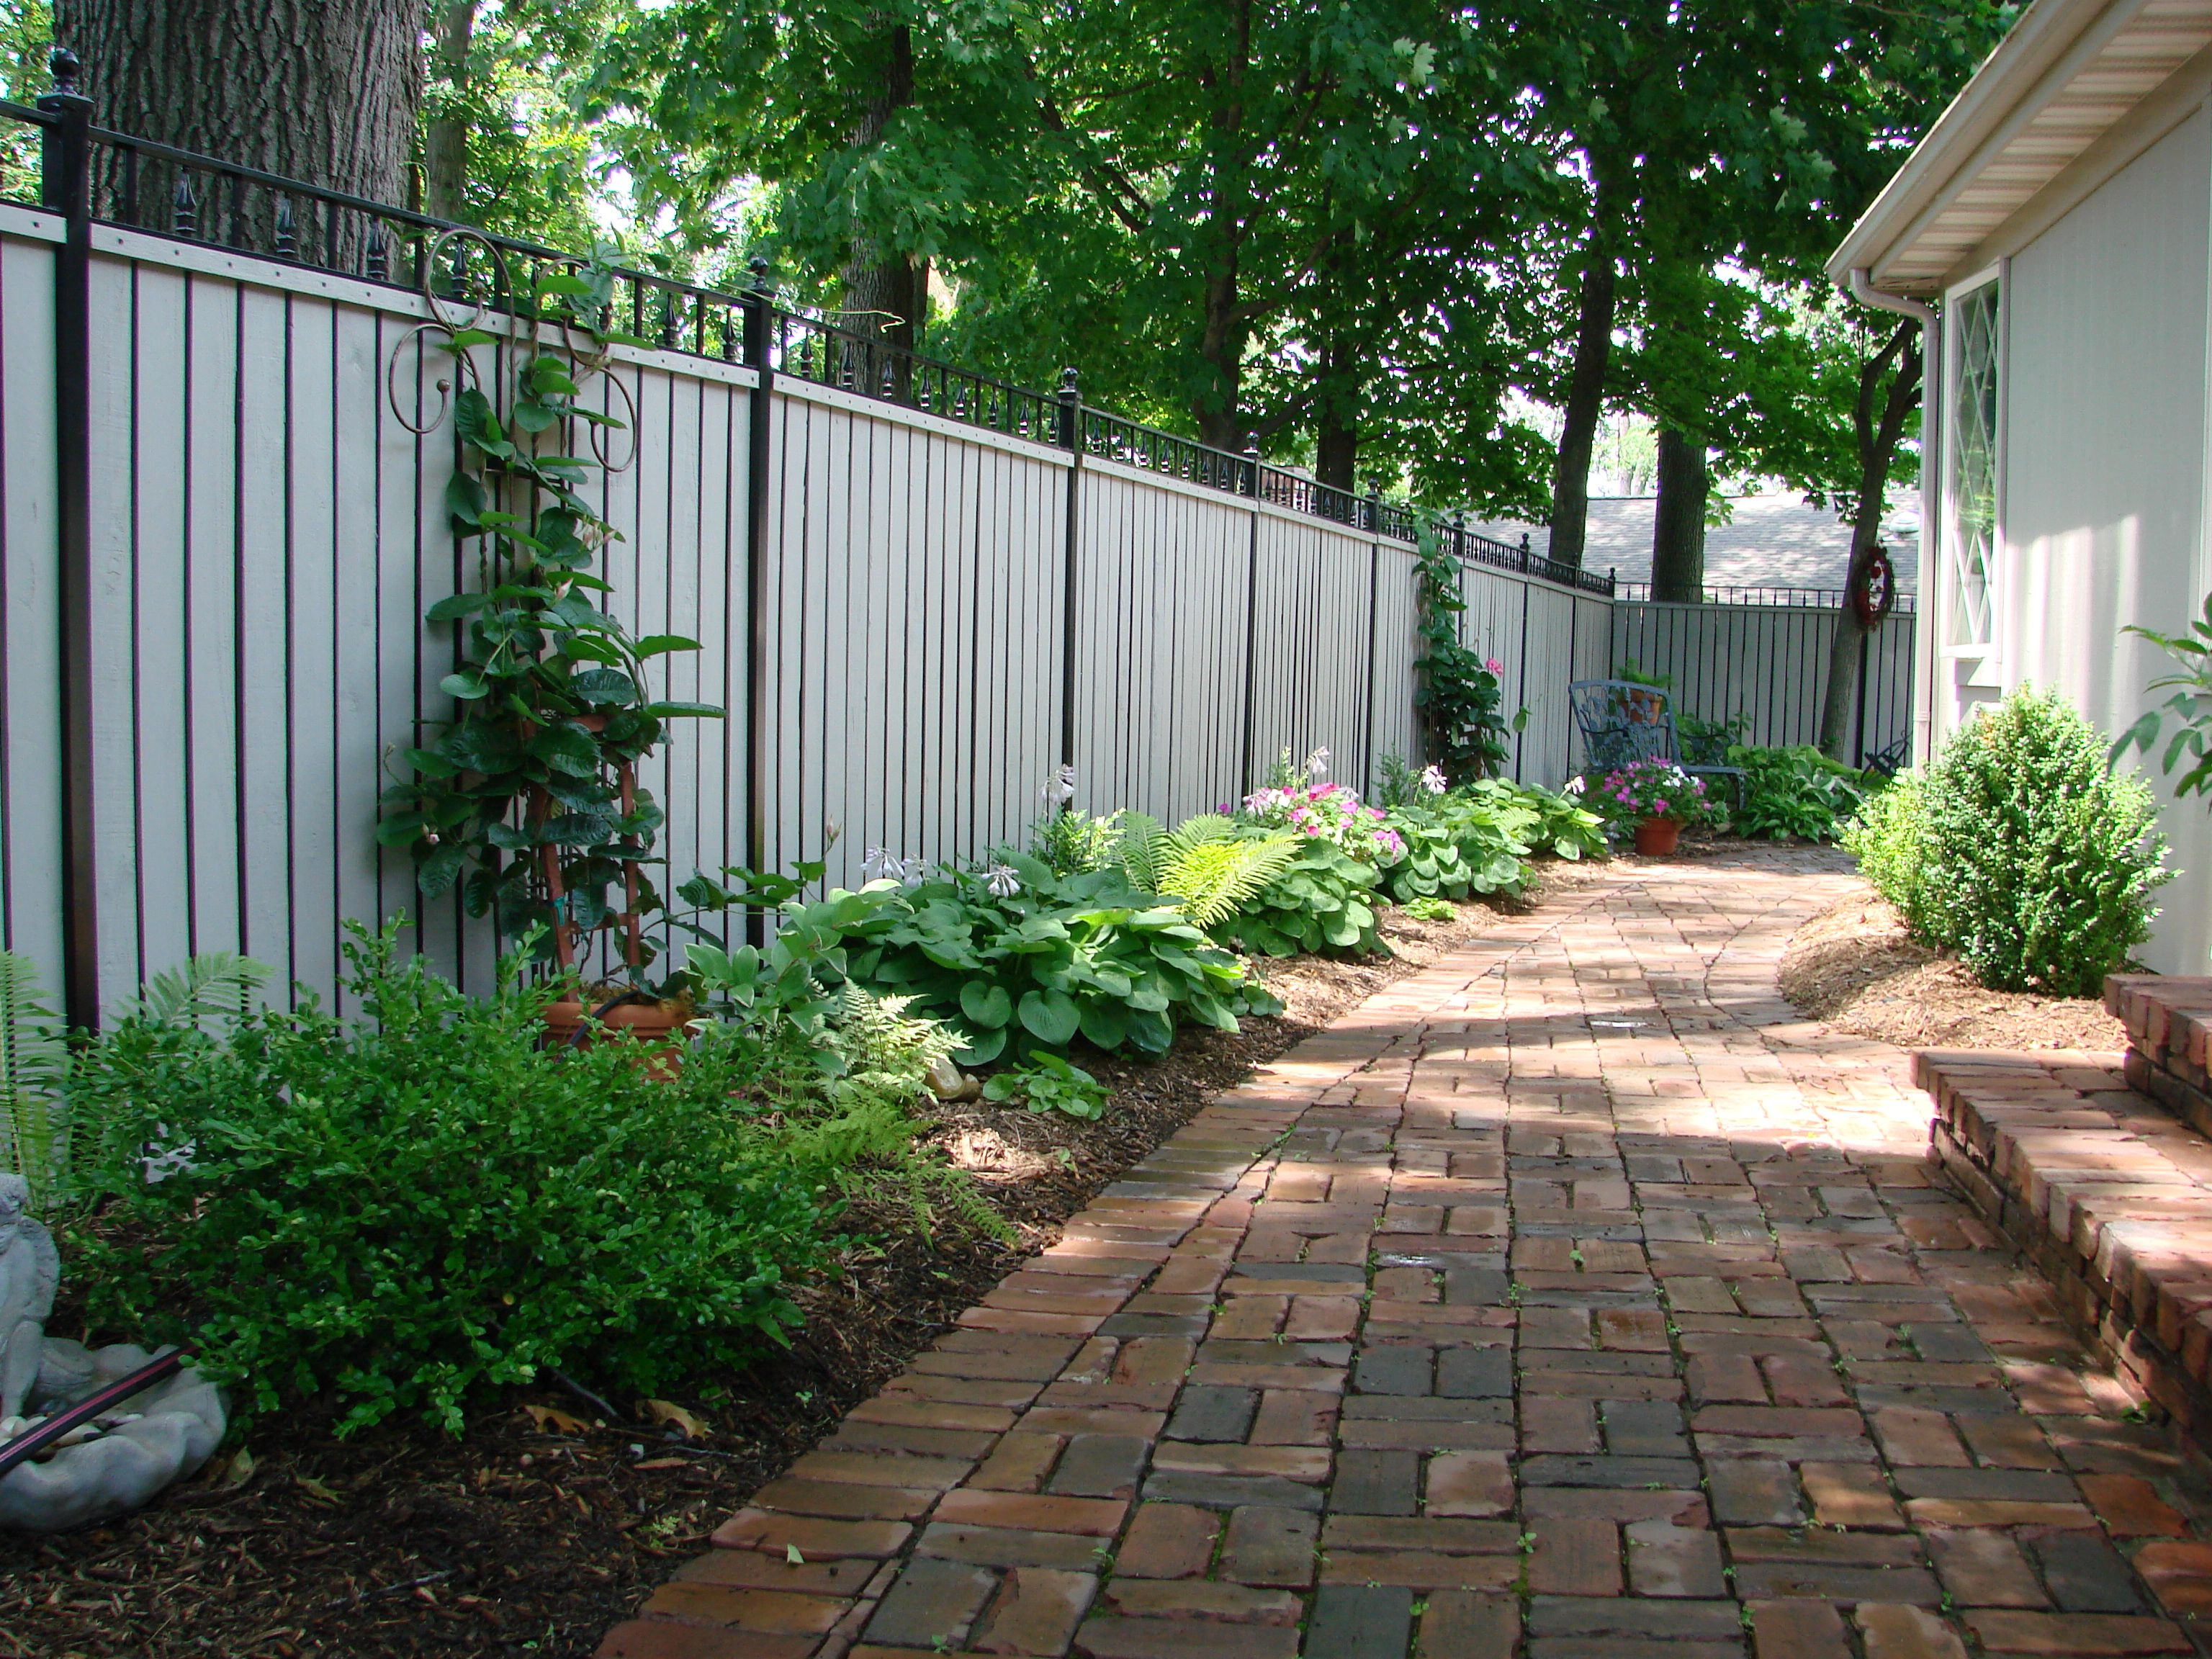 landscaping along fence and pavers | O U T D O O R S P A C ... on Backyard Landscaping Along Fence id=44549